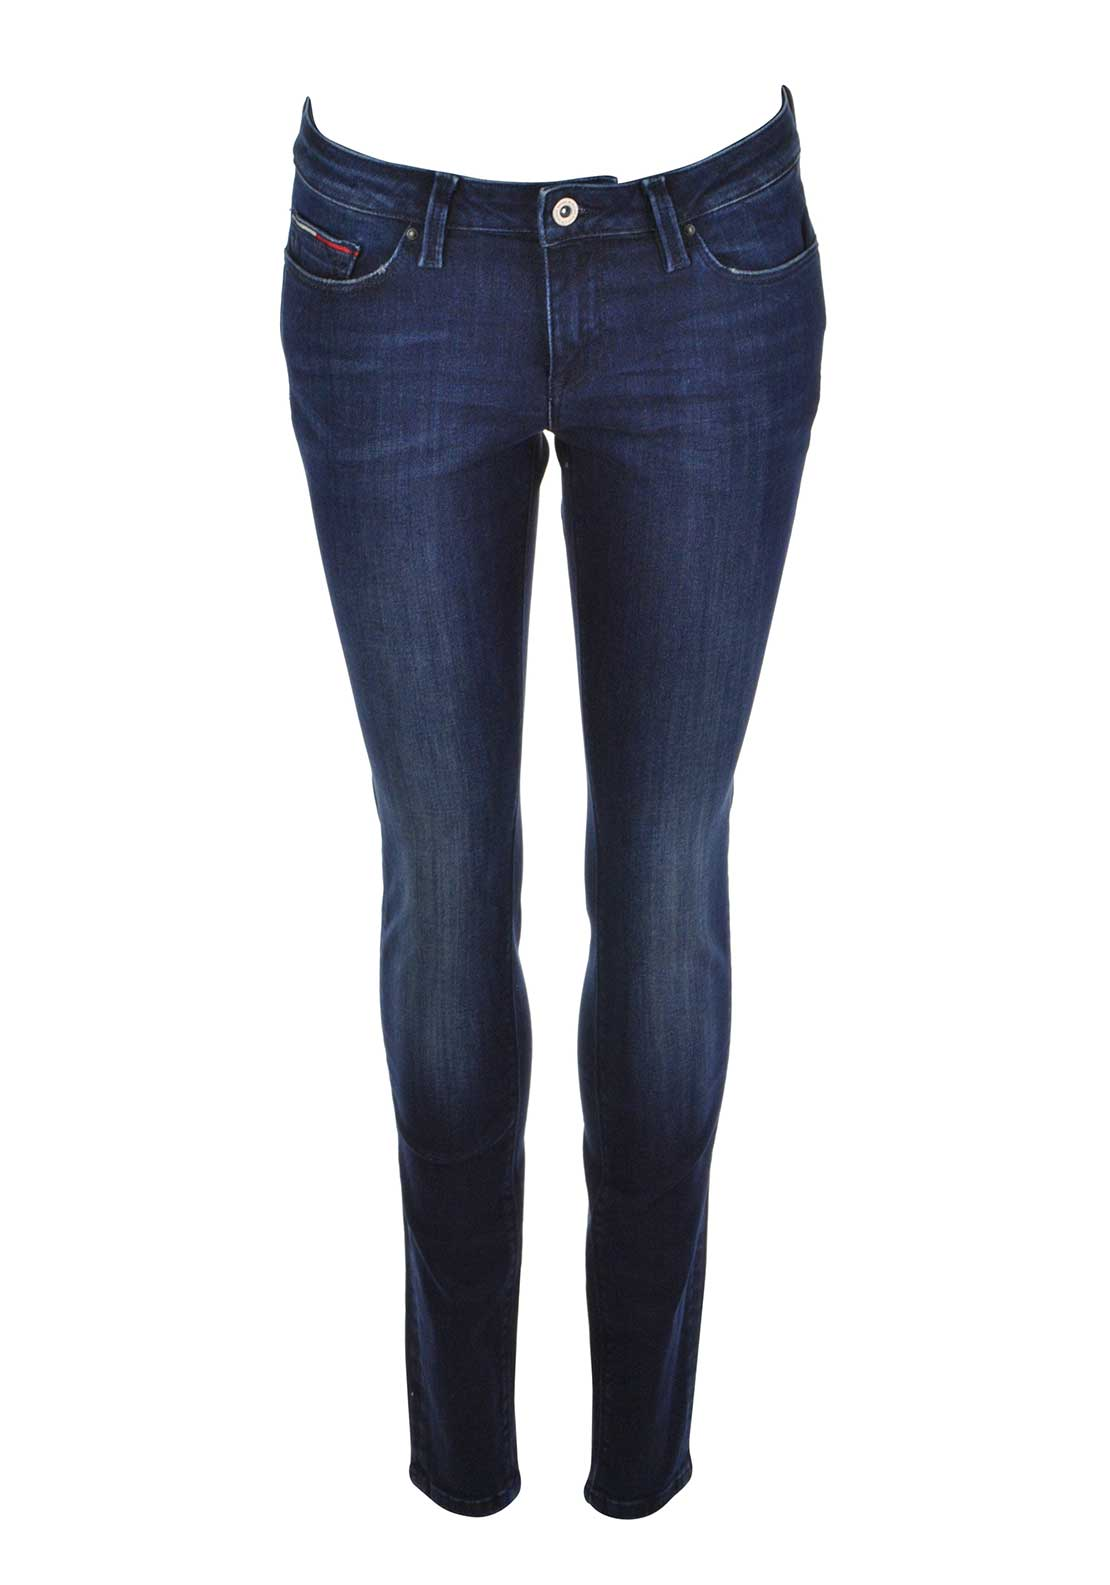 Tommy Hilfiger Womens Nora Mid Rise Skinny Jeans, Dark Blue